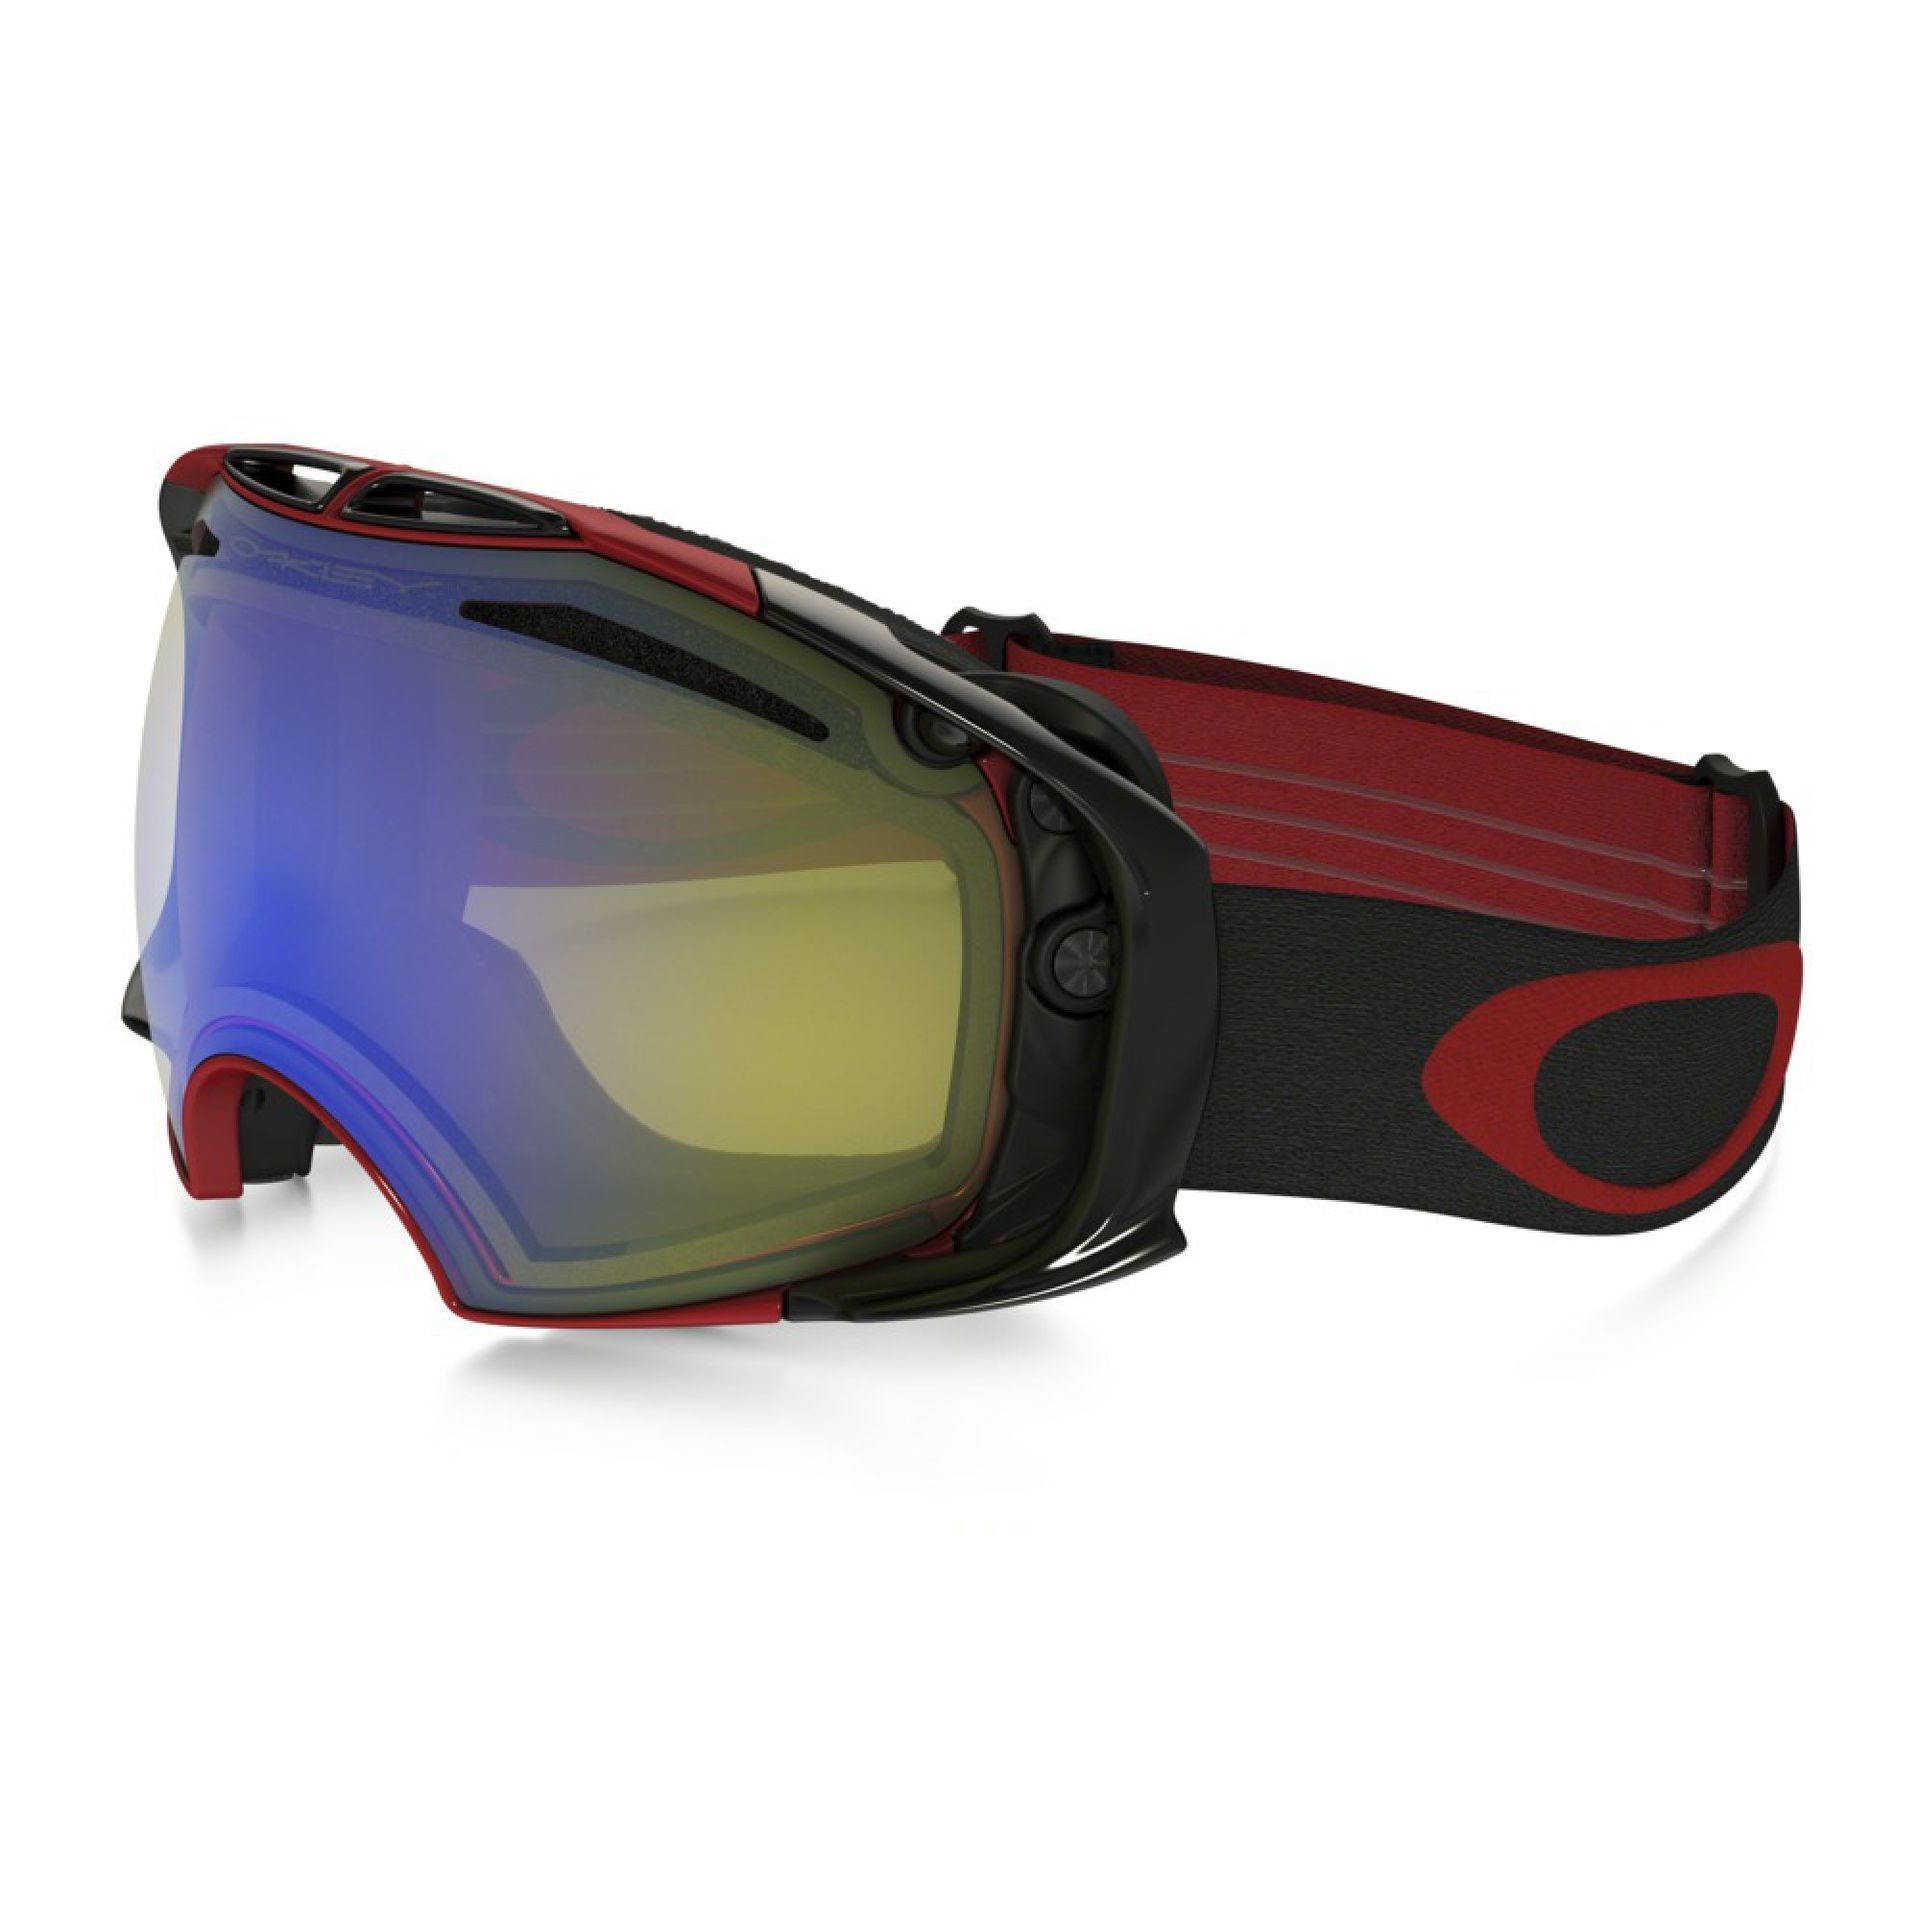 GOGLE OAKLEY AIRBRAKE RED YELLOW